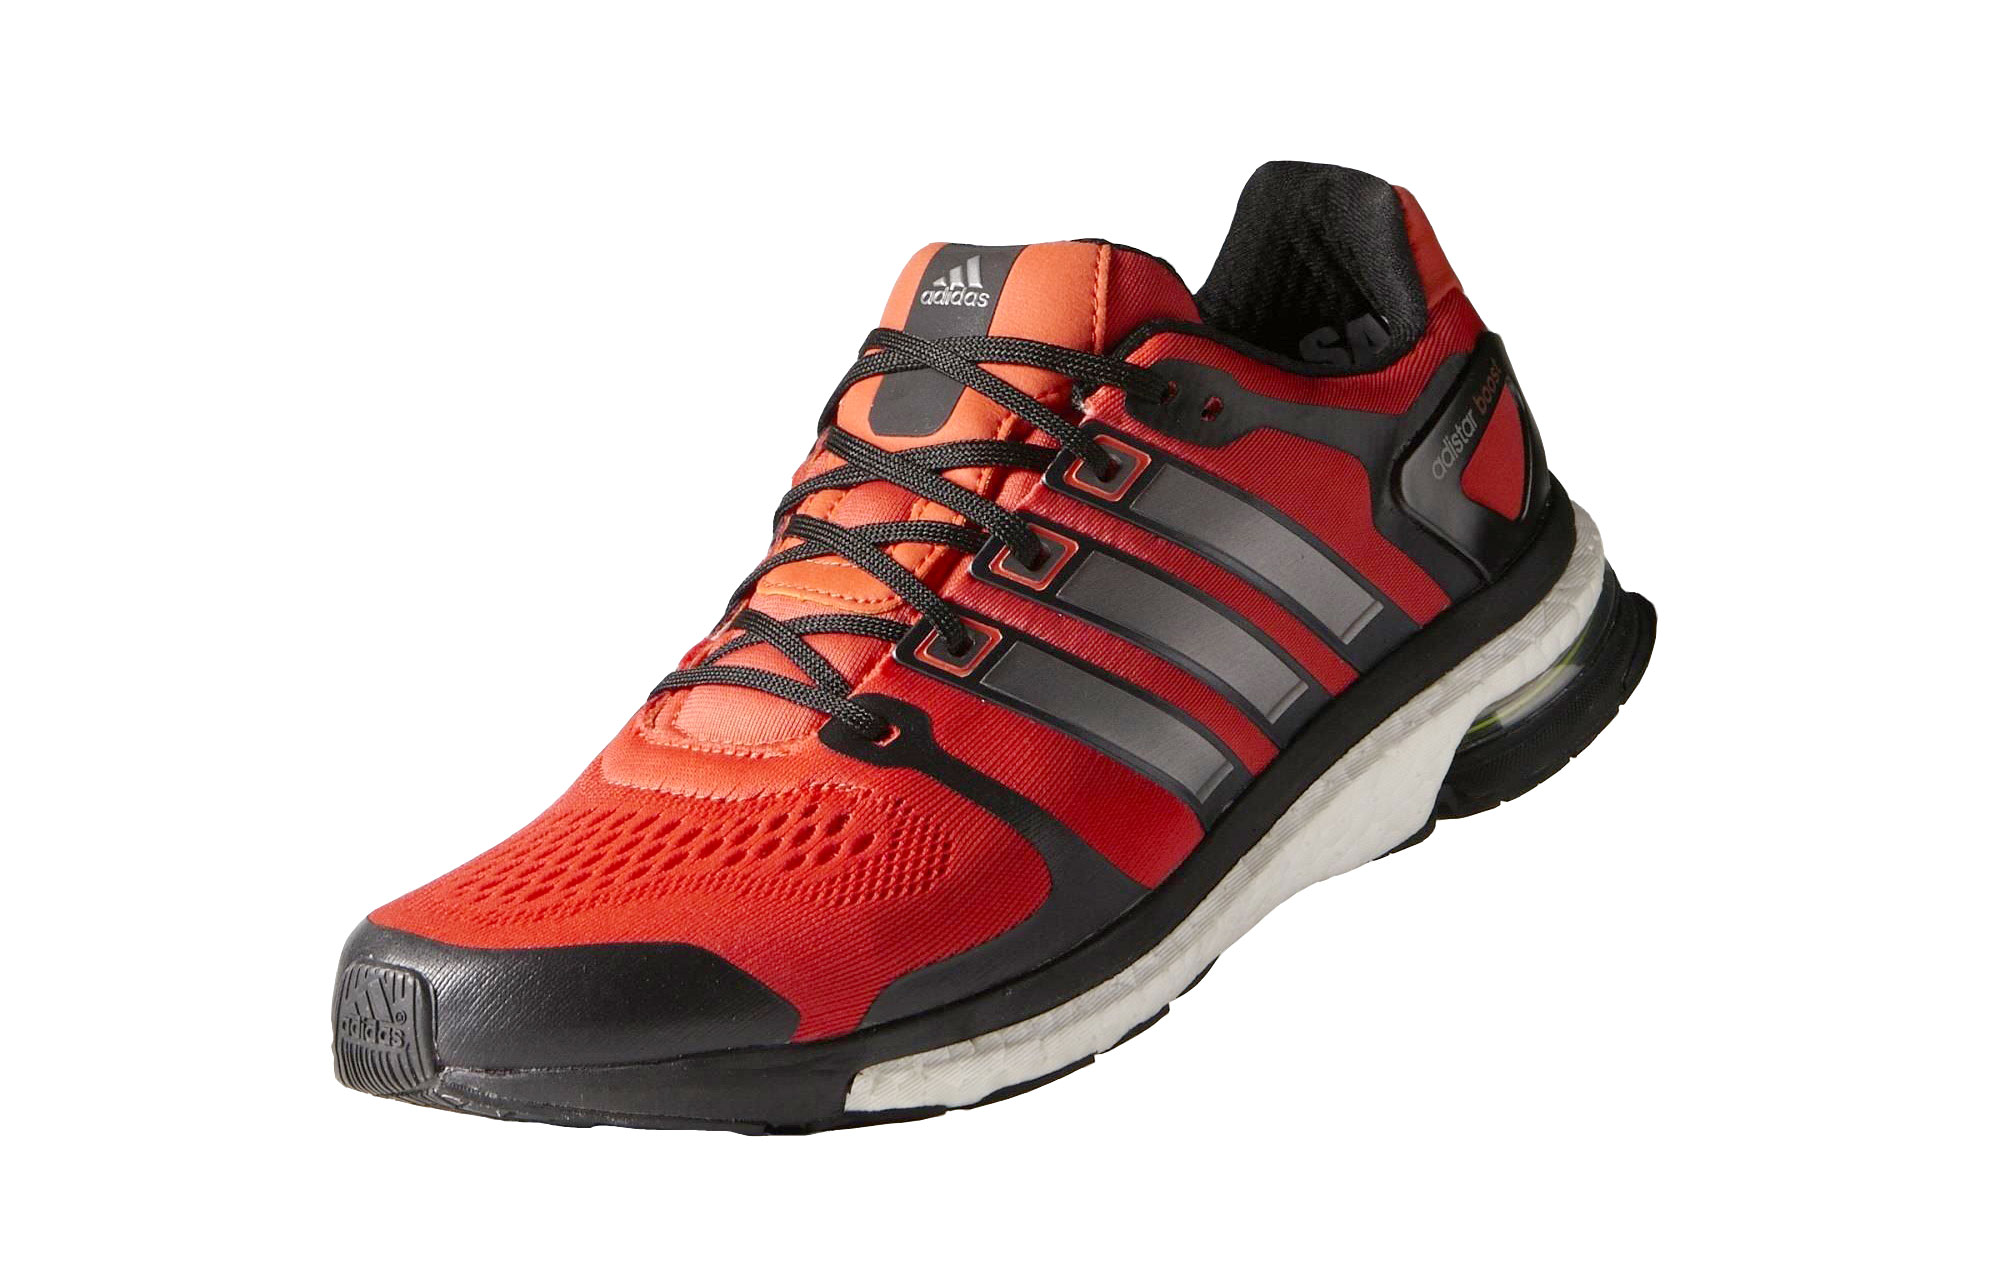 Adidas Adidas Chaussure Chaussure Homme Homme Adidas Chaussure Boost Boost Adistar Adistar Adistar 0wkXPn8O